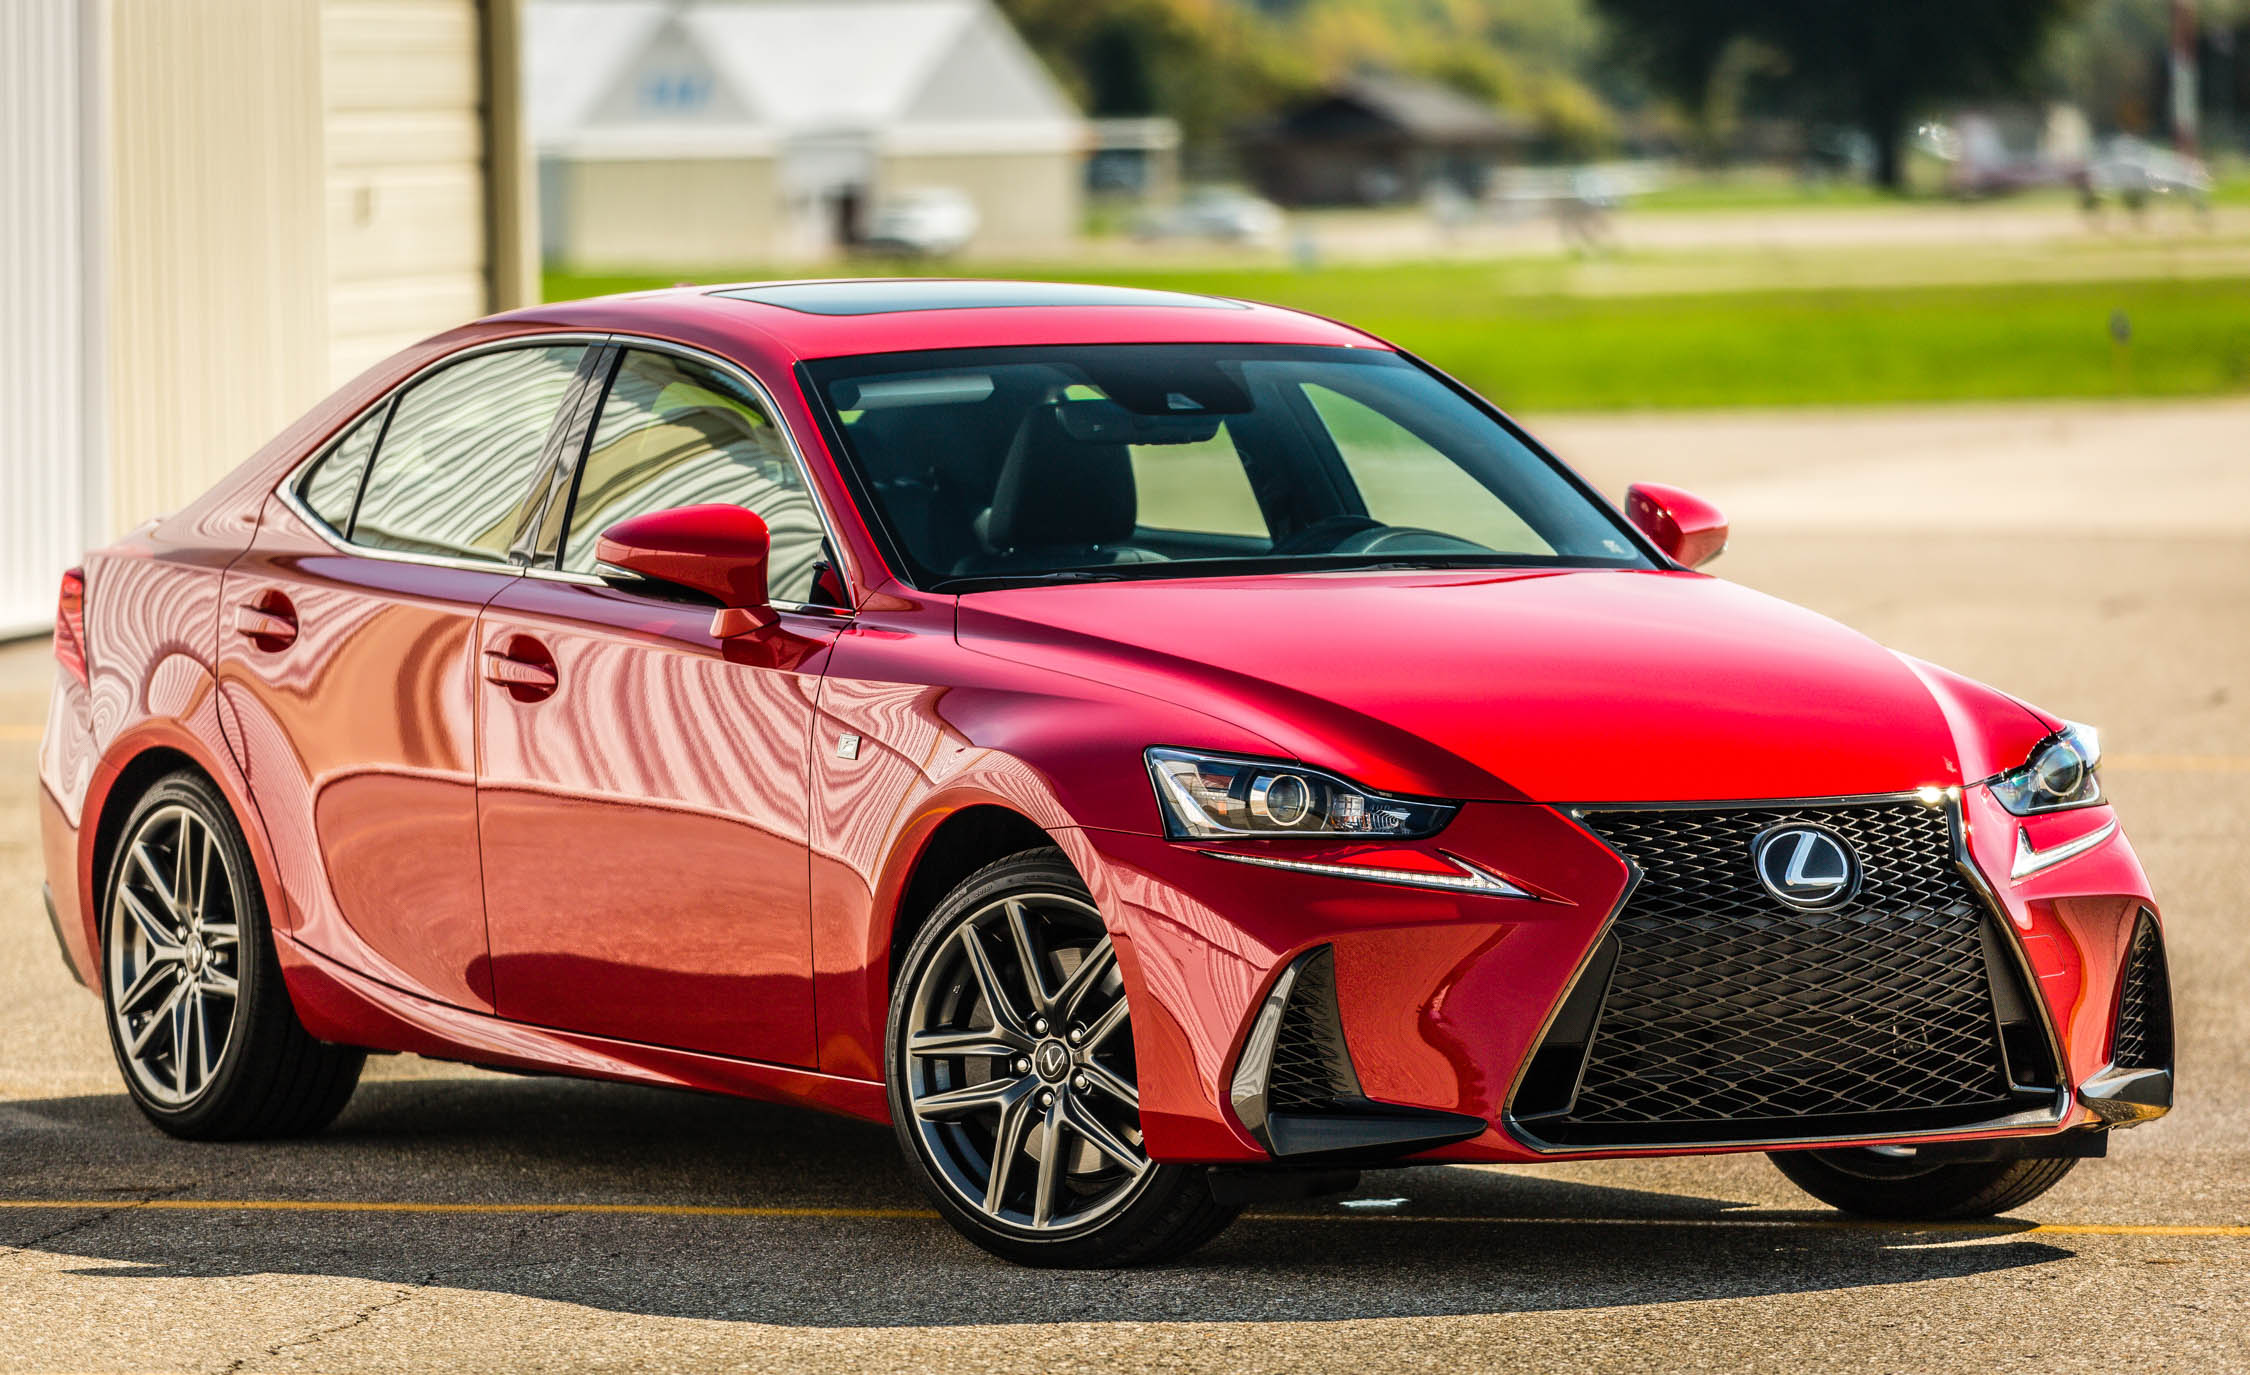 2017 Lexus IS 200t F Sport Exterior (Photo 2 of 29)